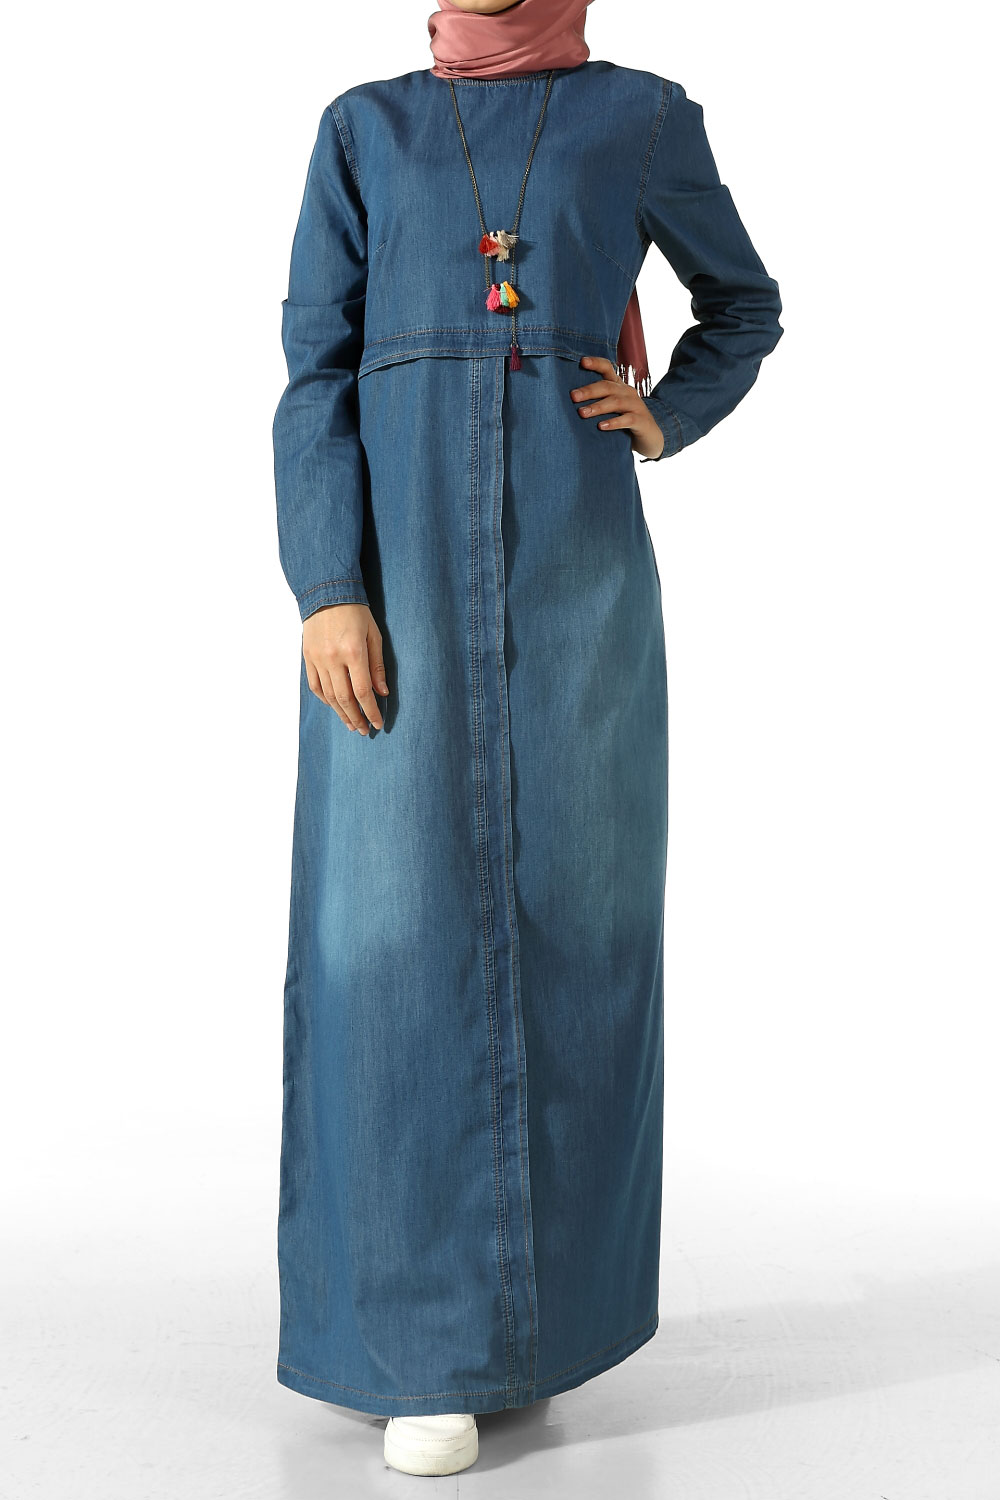 accd5c6a9b Middle Blue Jeans Dress - 2177